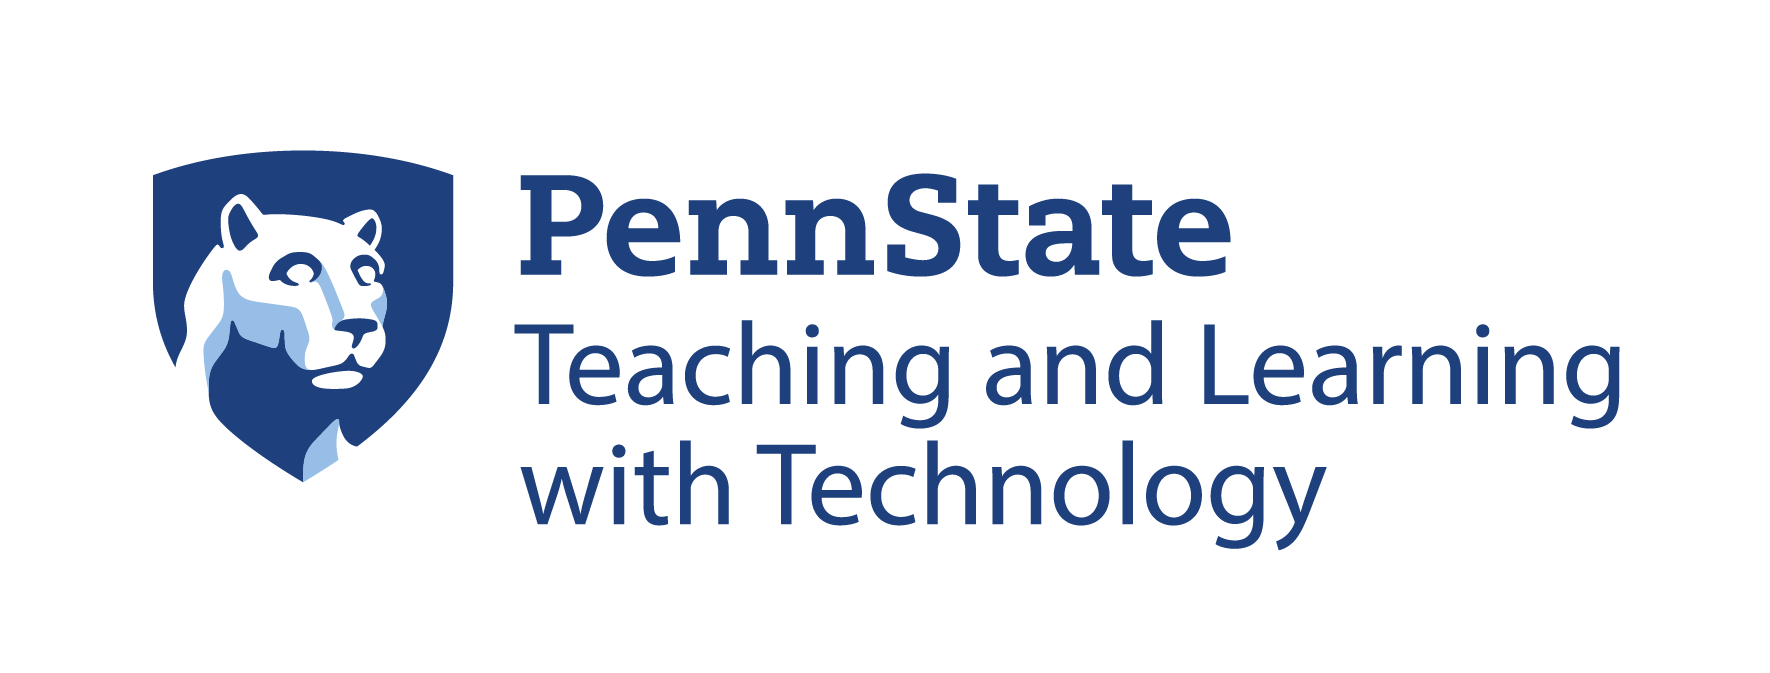 Penn State Lion logo and Teaching and Learning with Technology